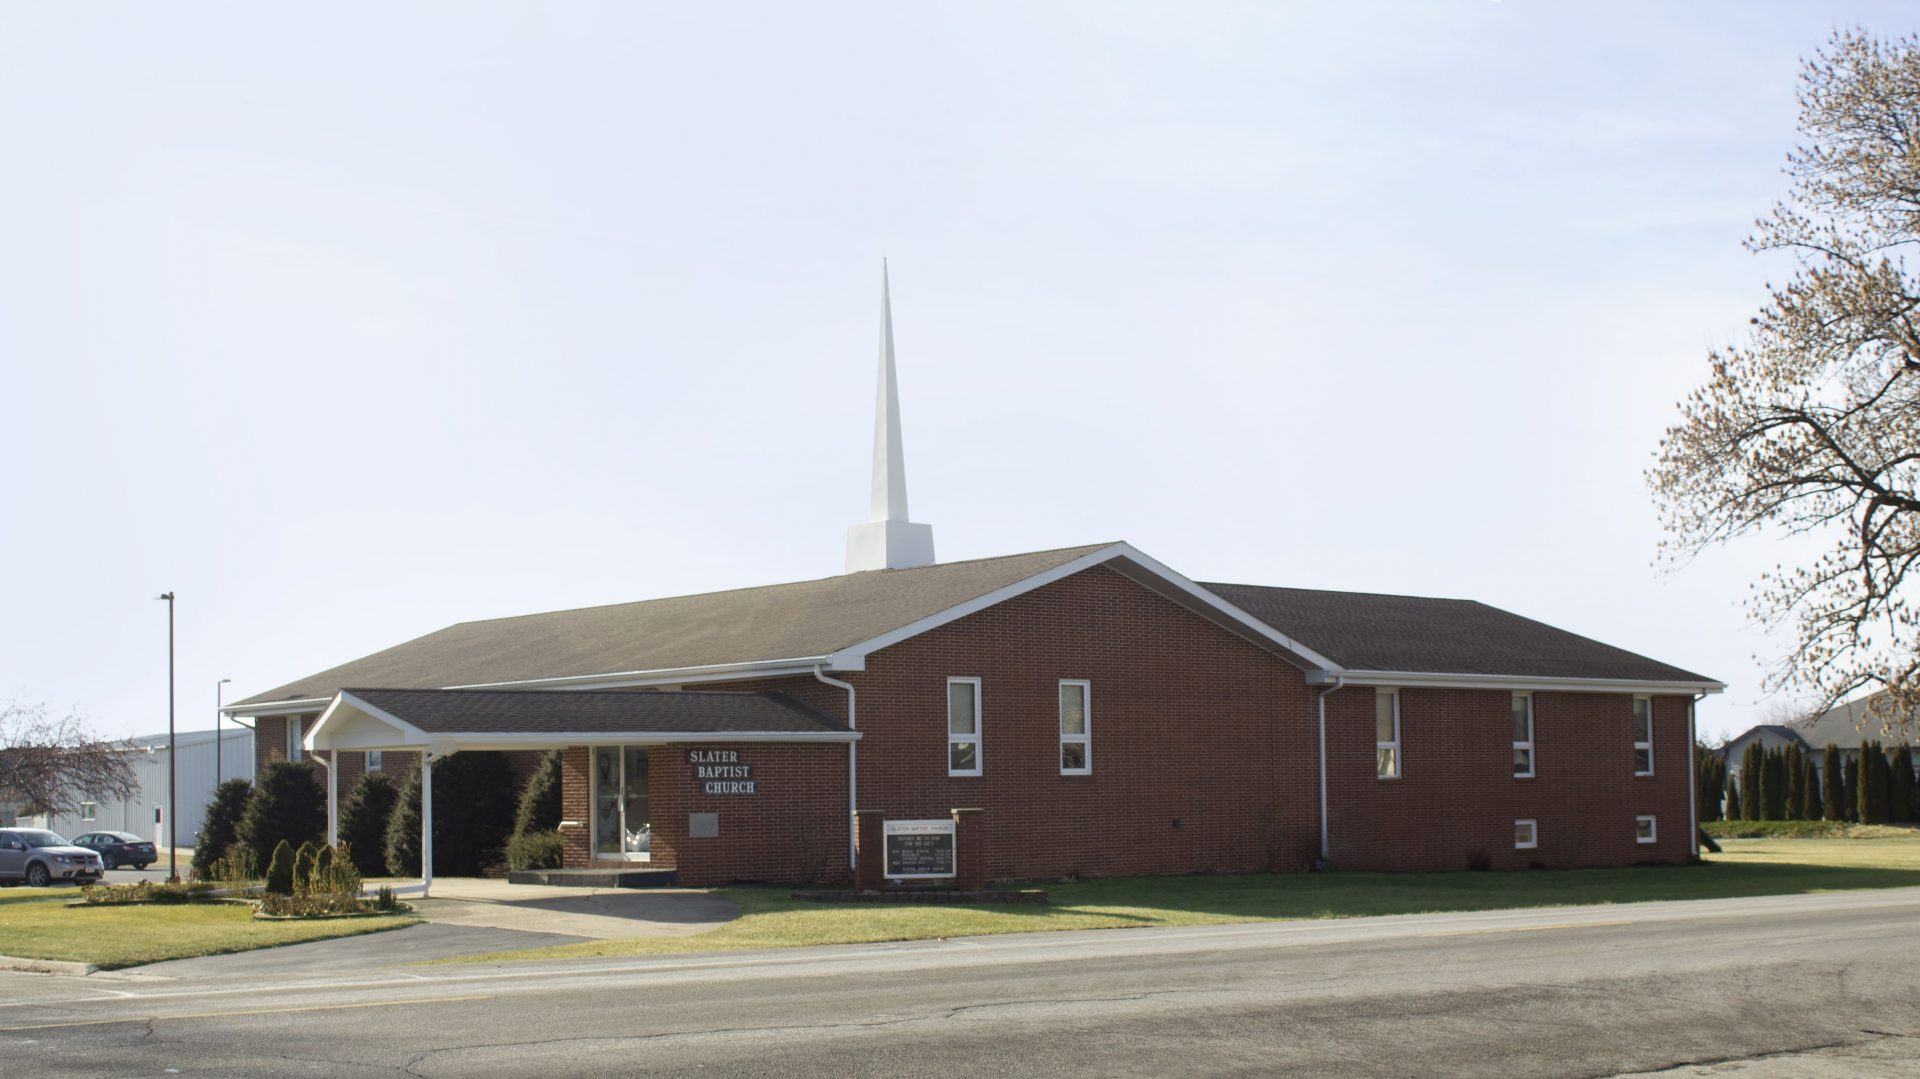 Slater Baptist Church